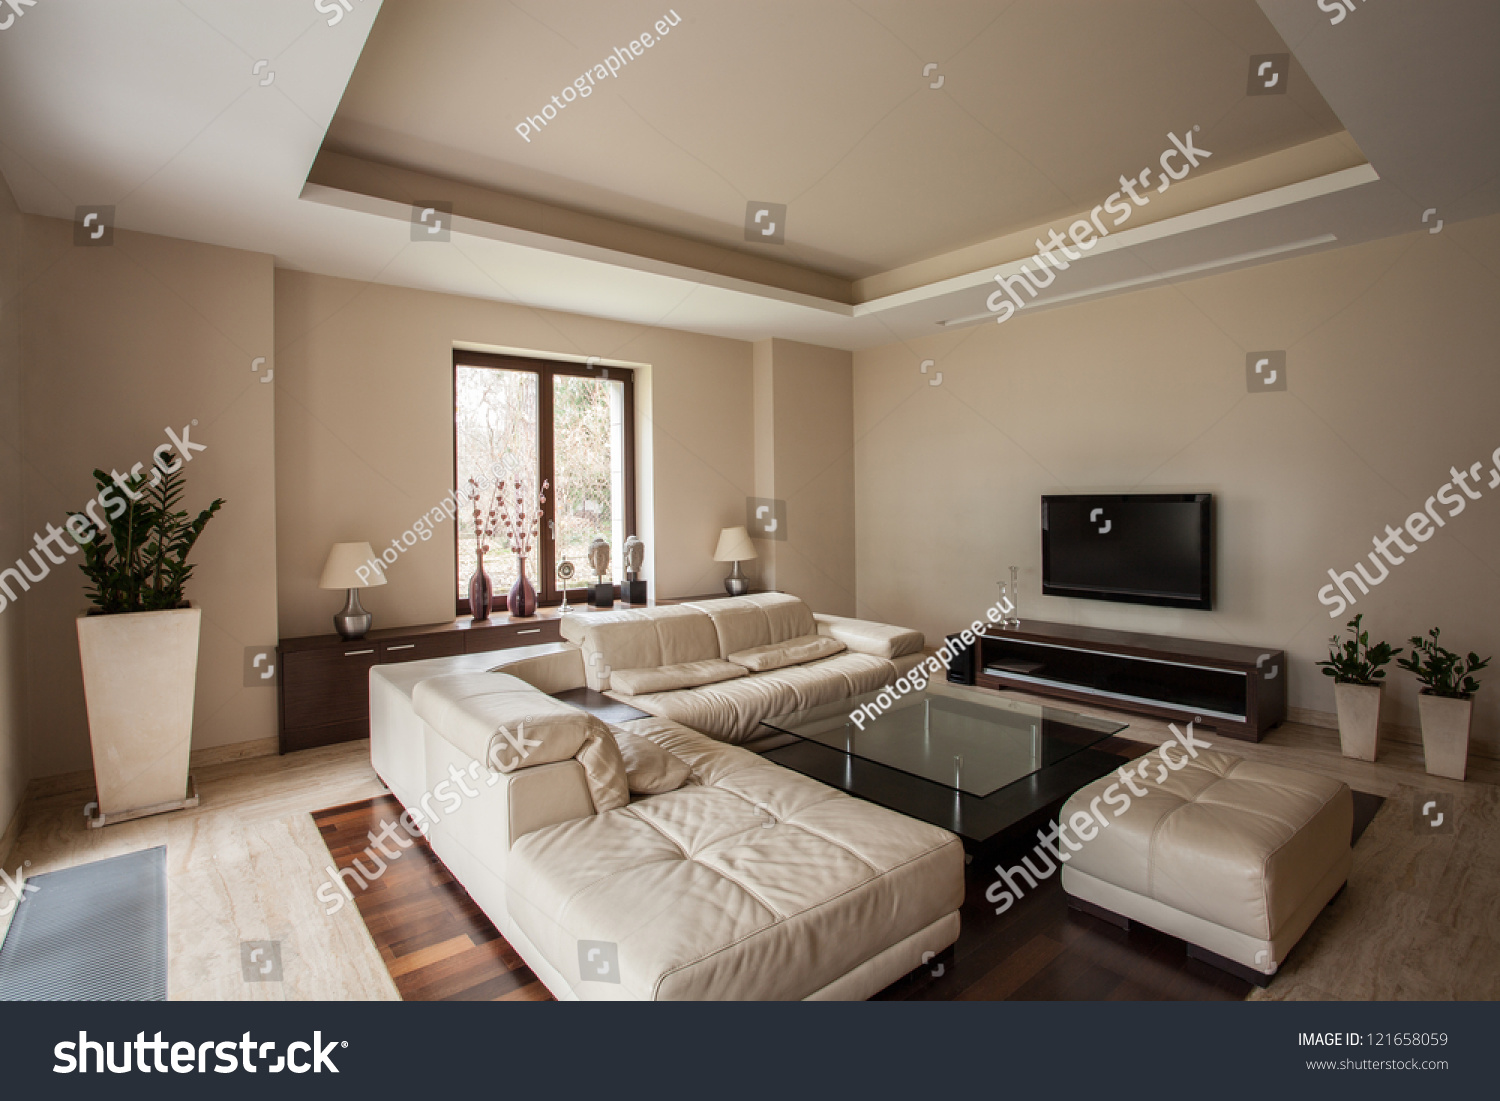 travertine house horizontal view of a living room interior stock